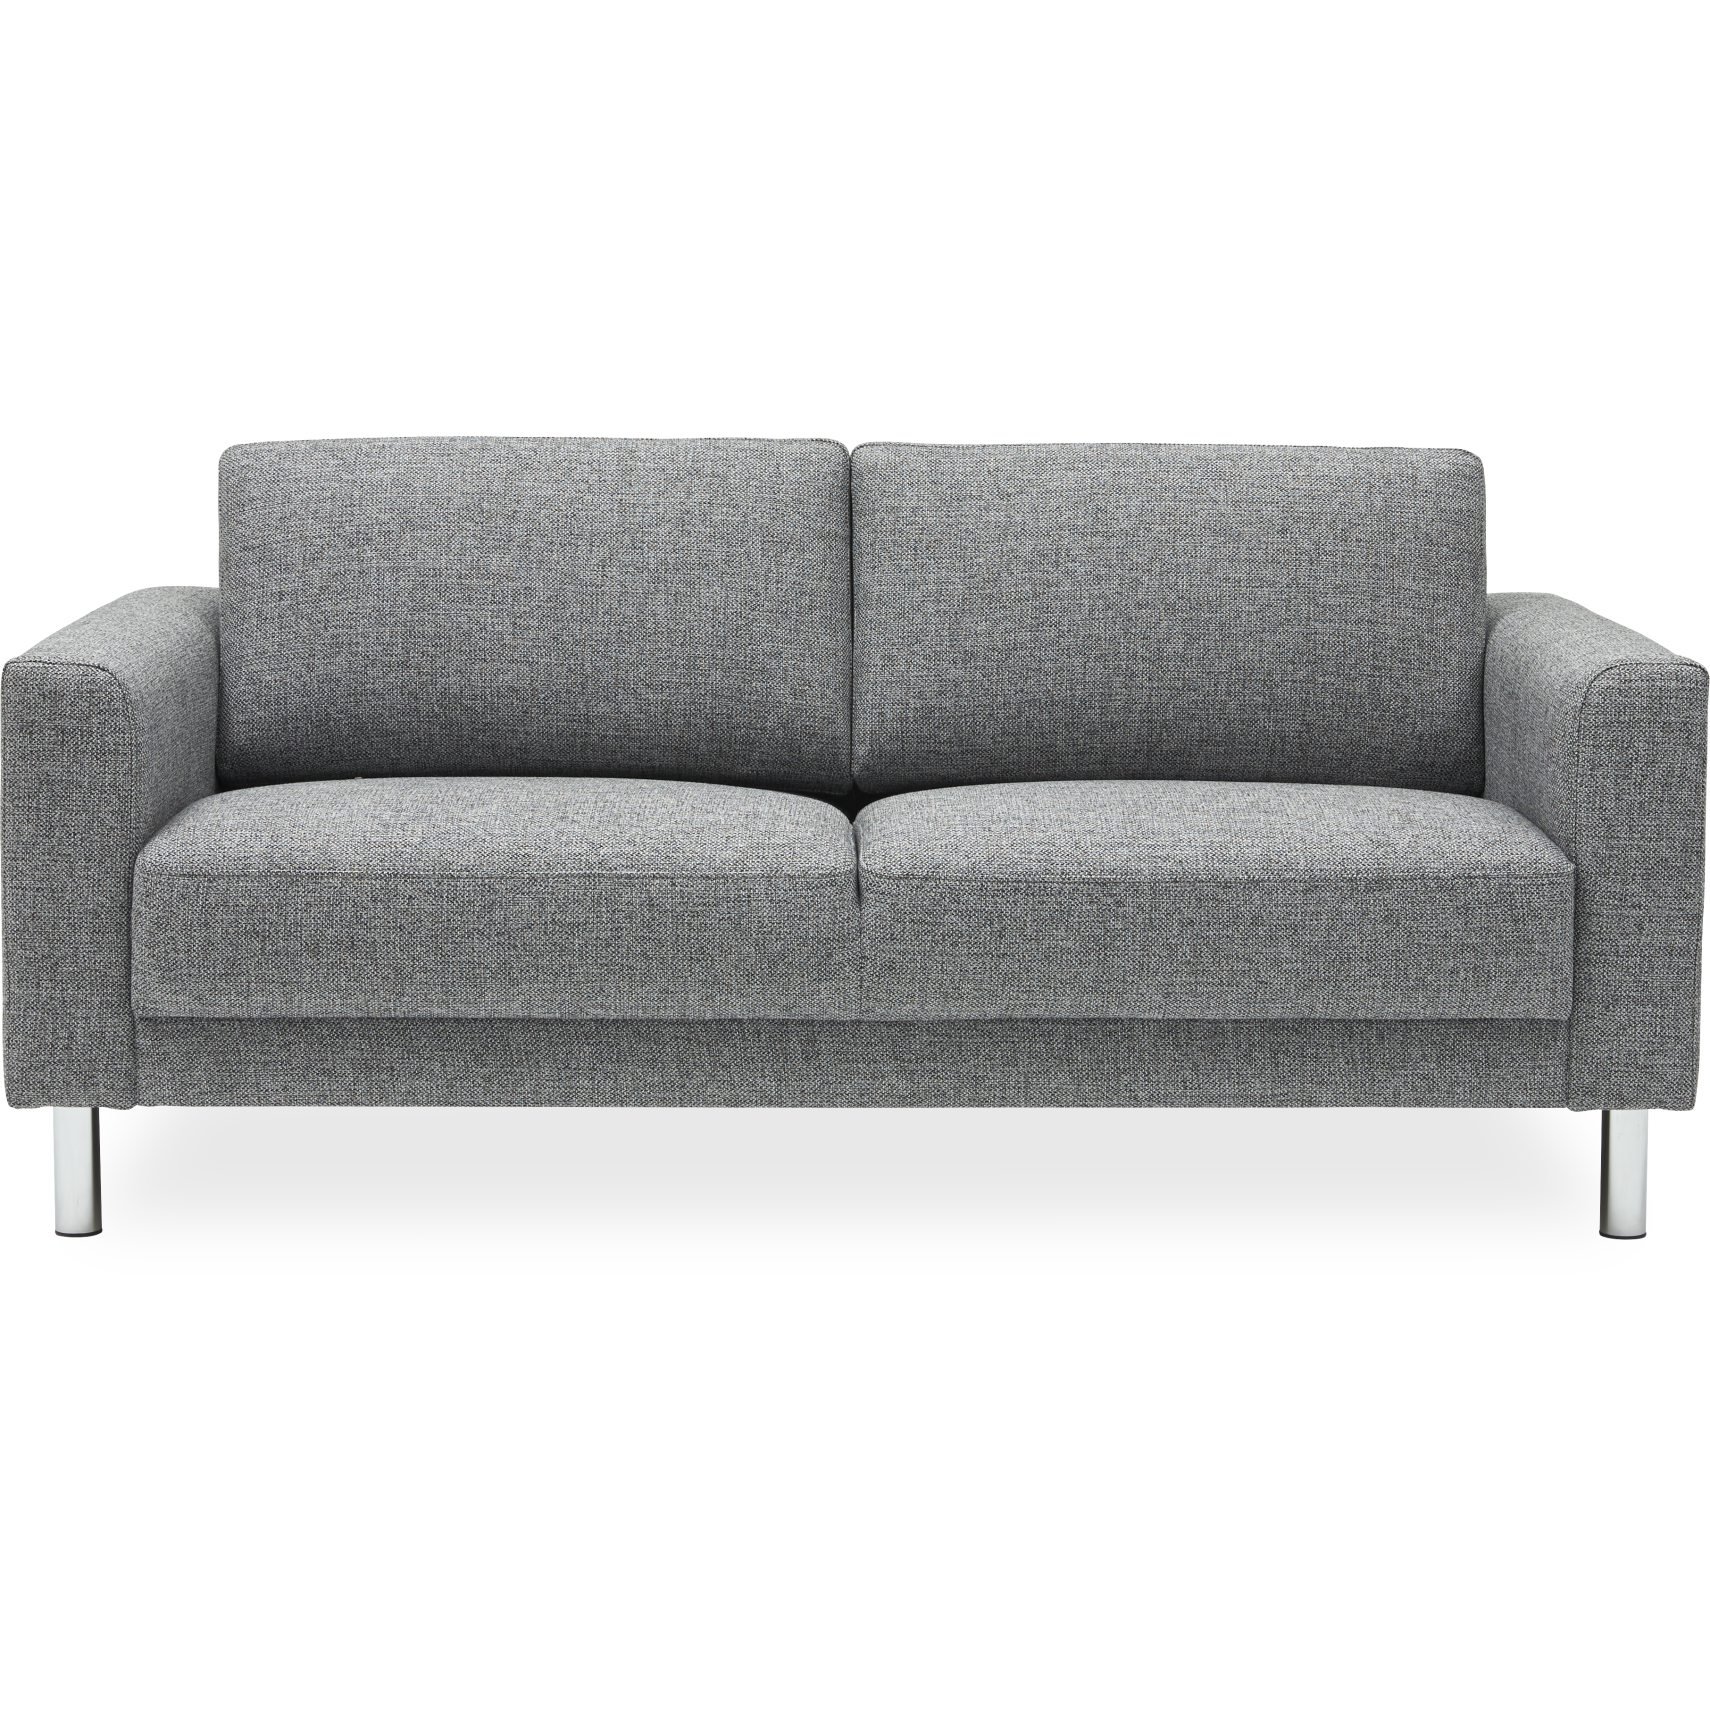 Picture of: Cleveland Sofa Med Chaiselong Kob Online Idemobler